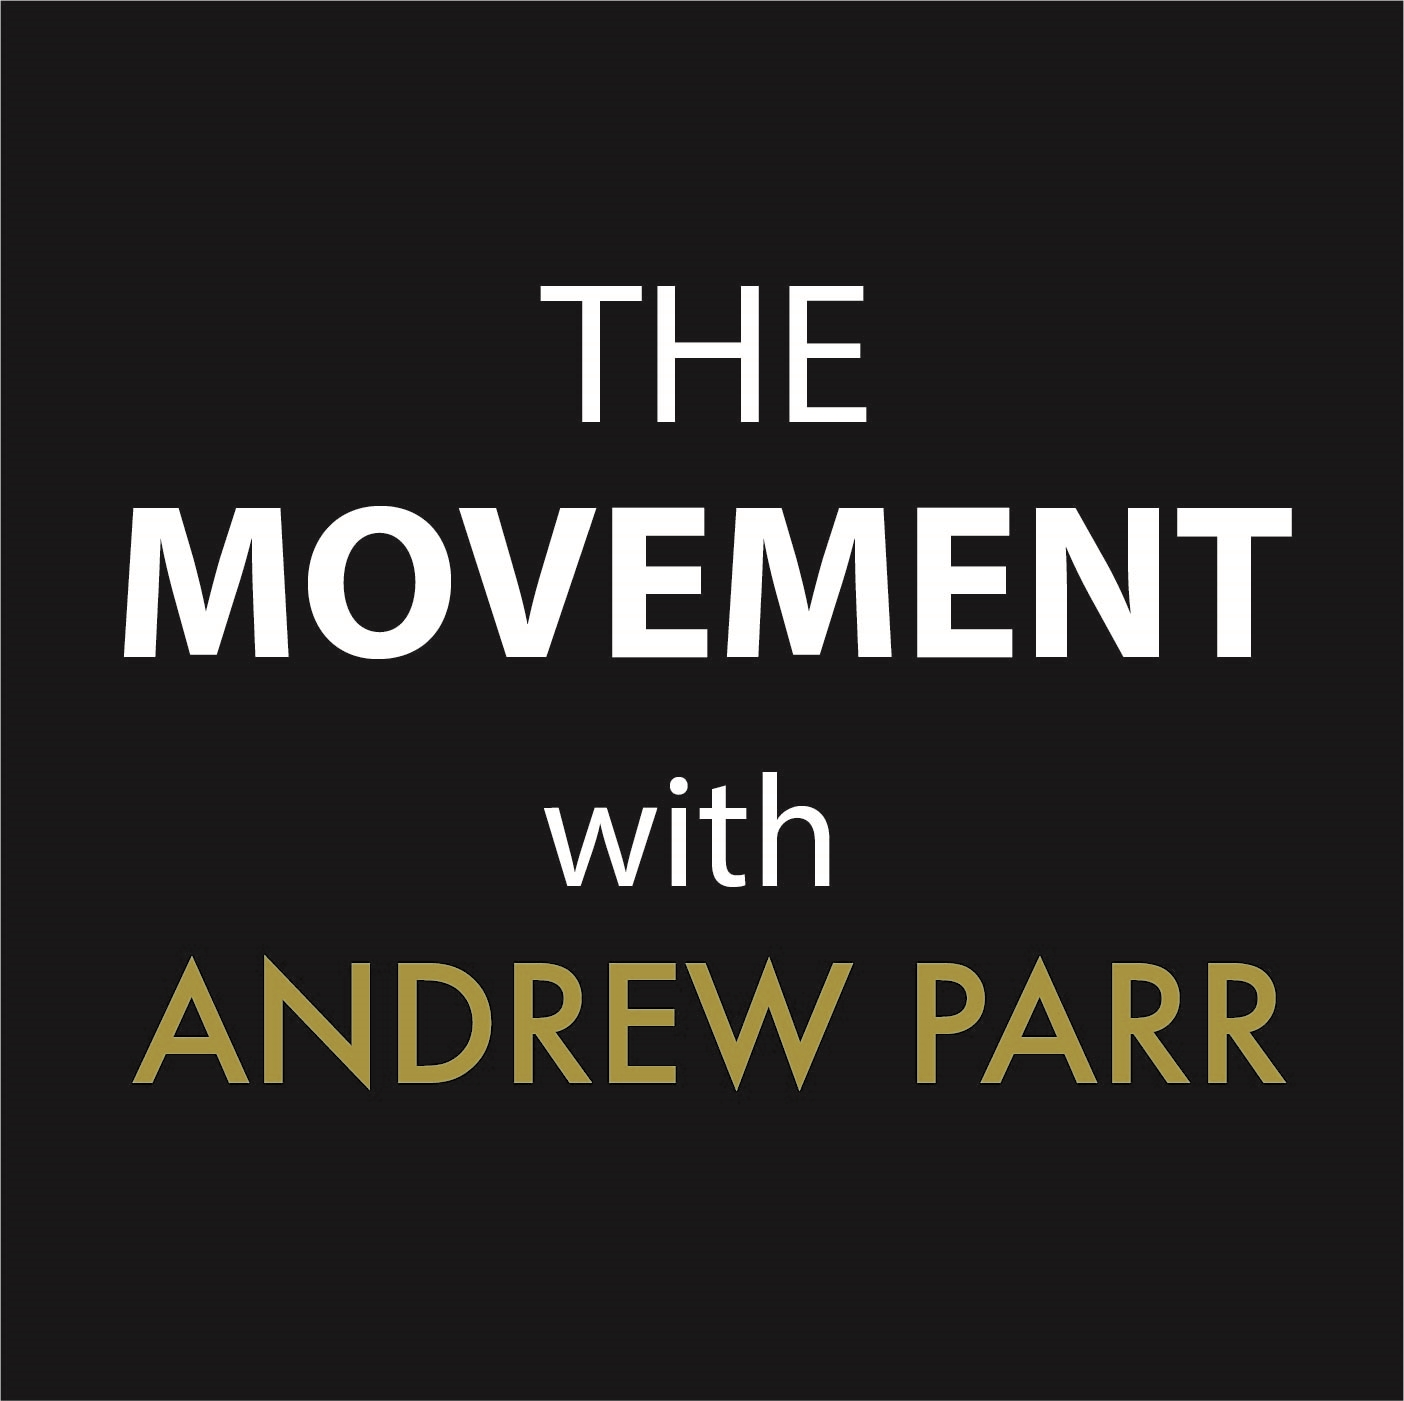 The Movement - Andrew Parr